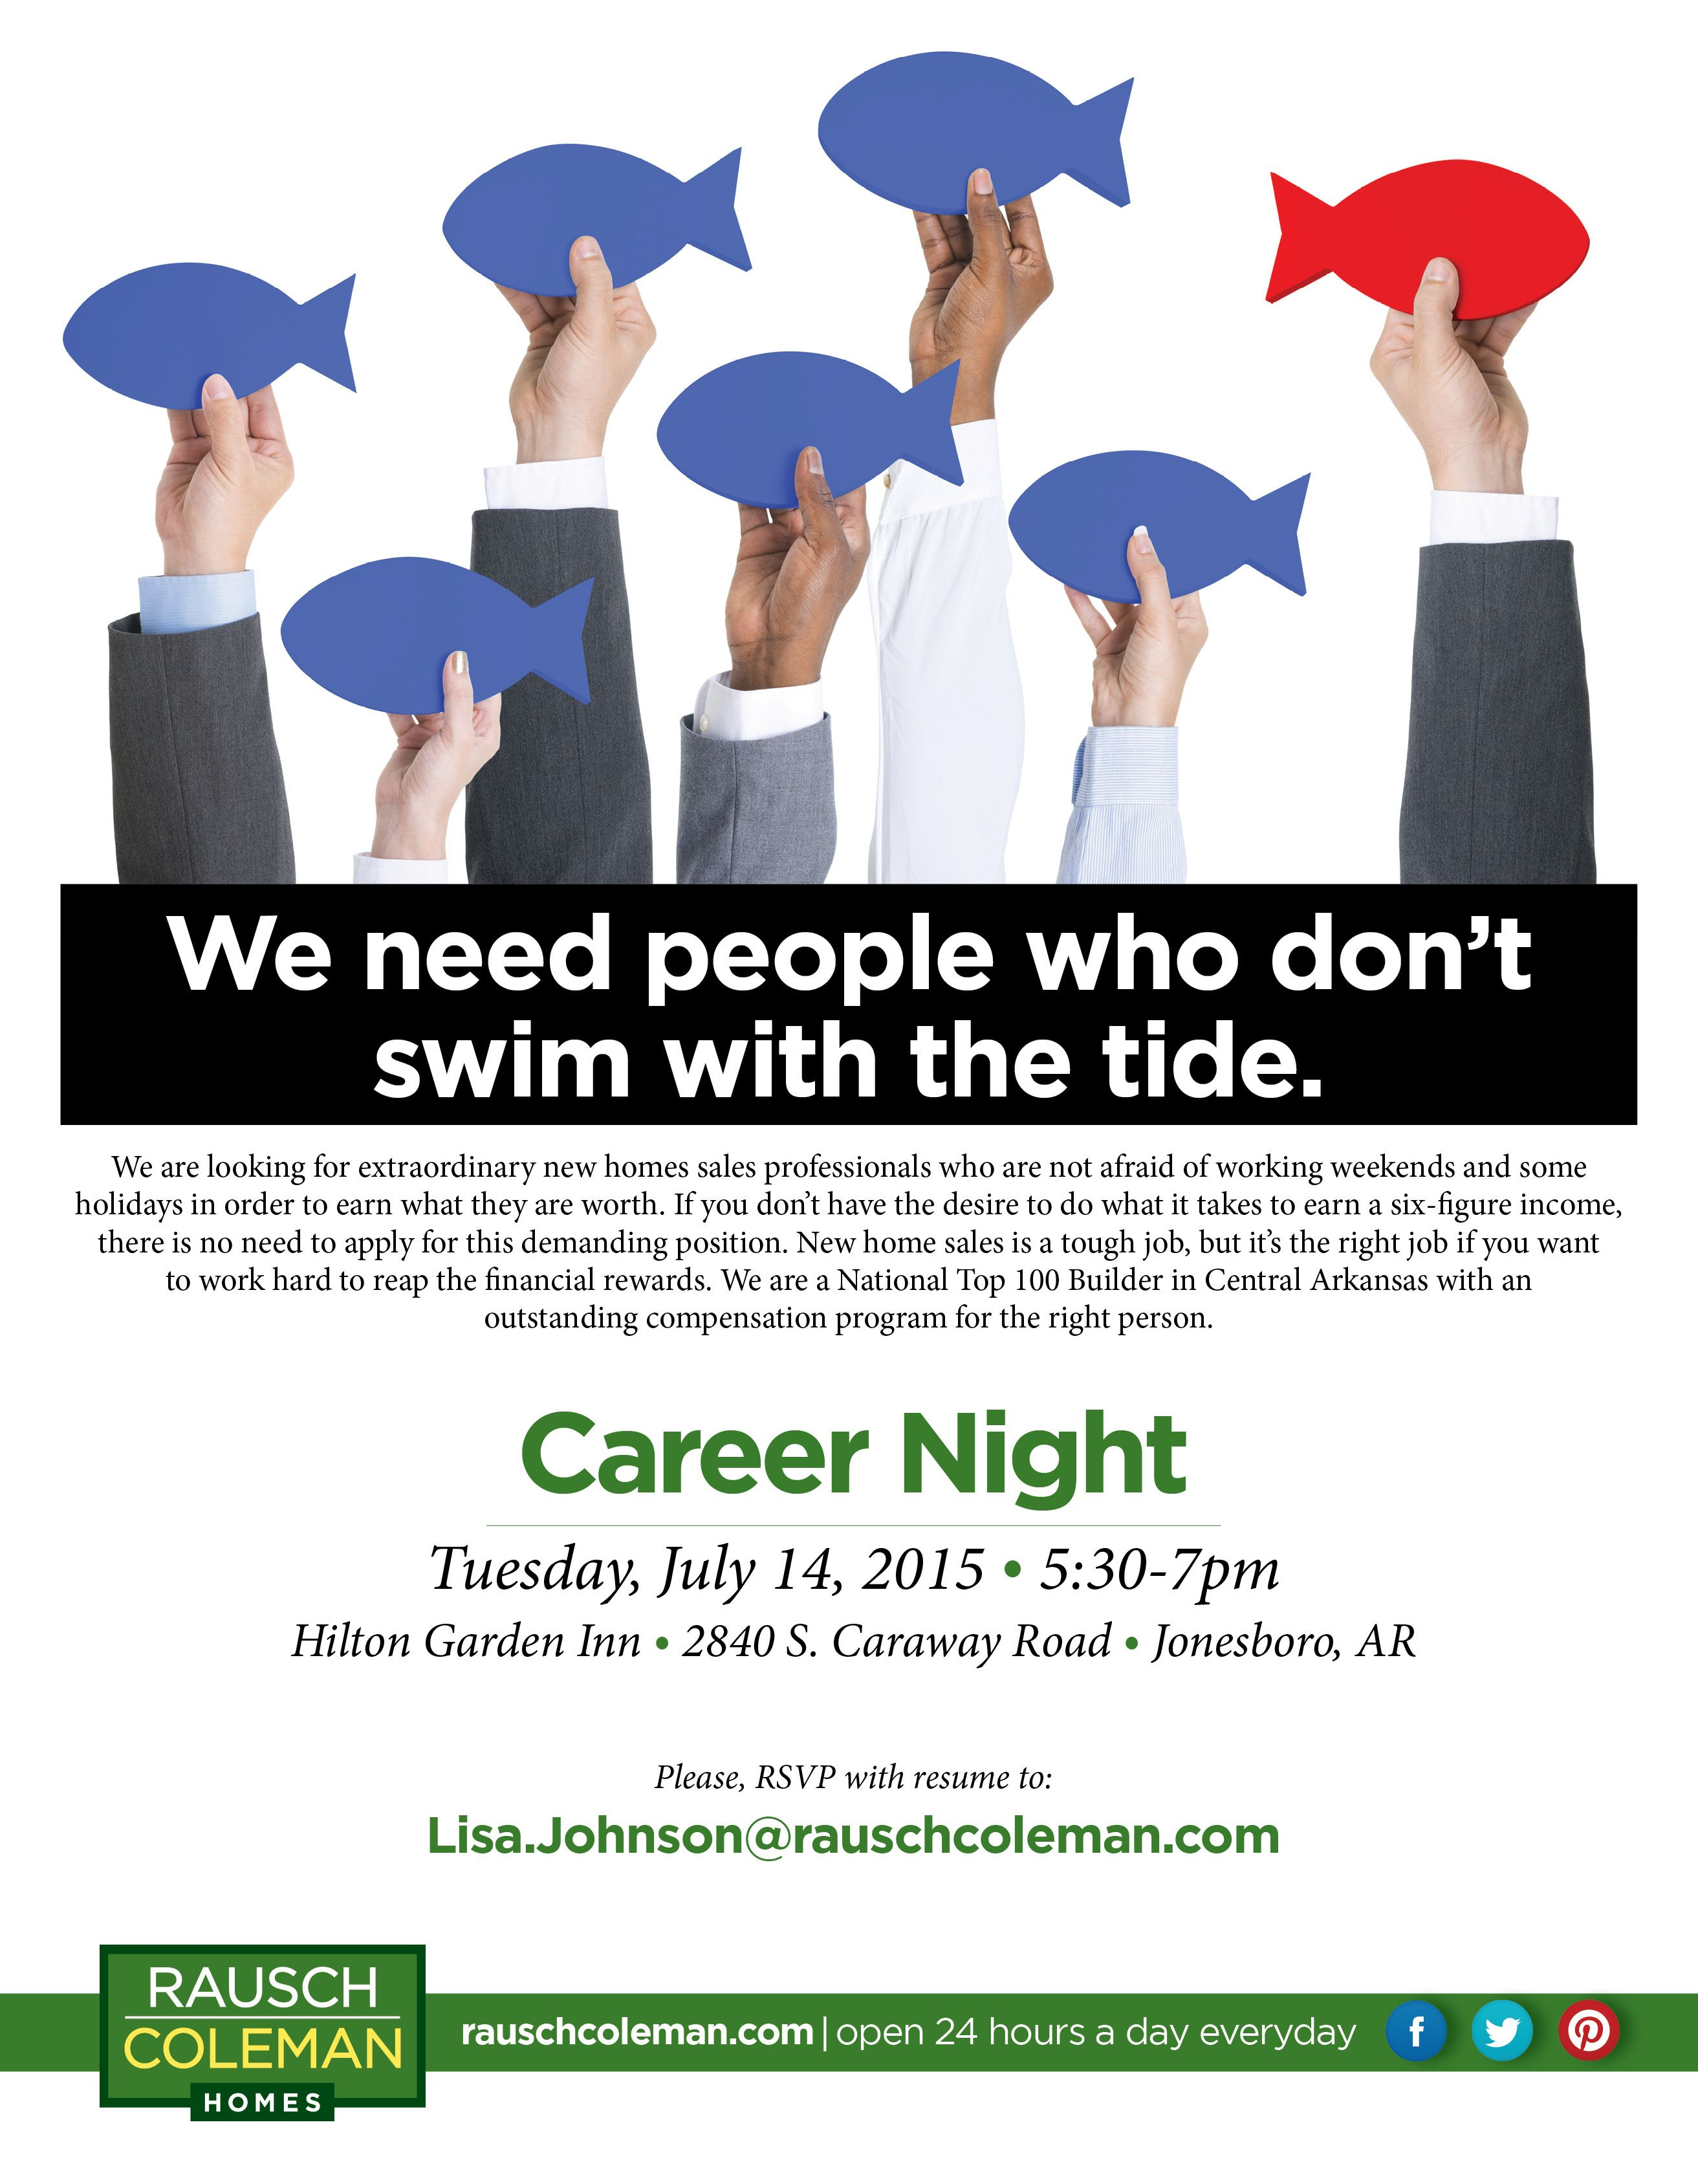 Don't miss this exciting networking and career opportunity